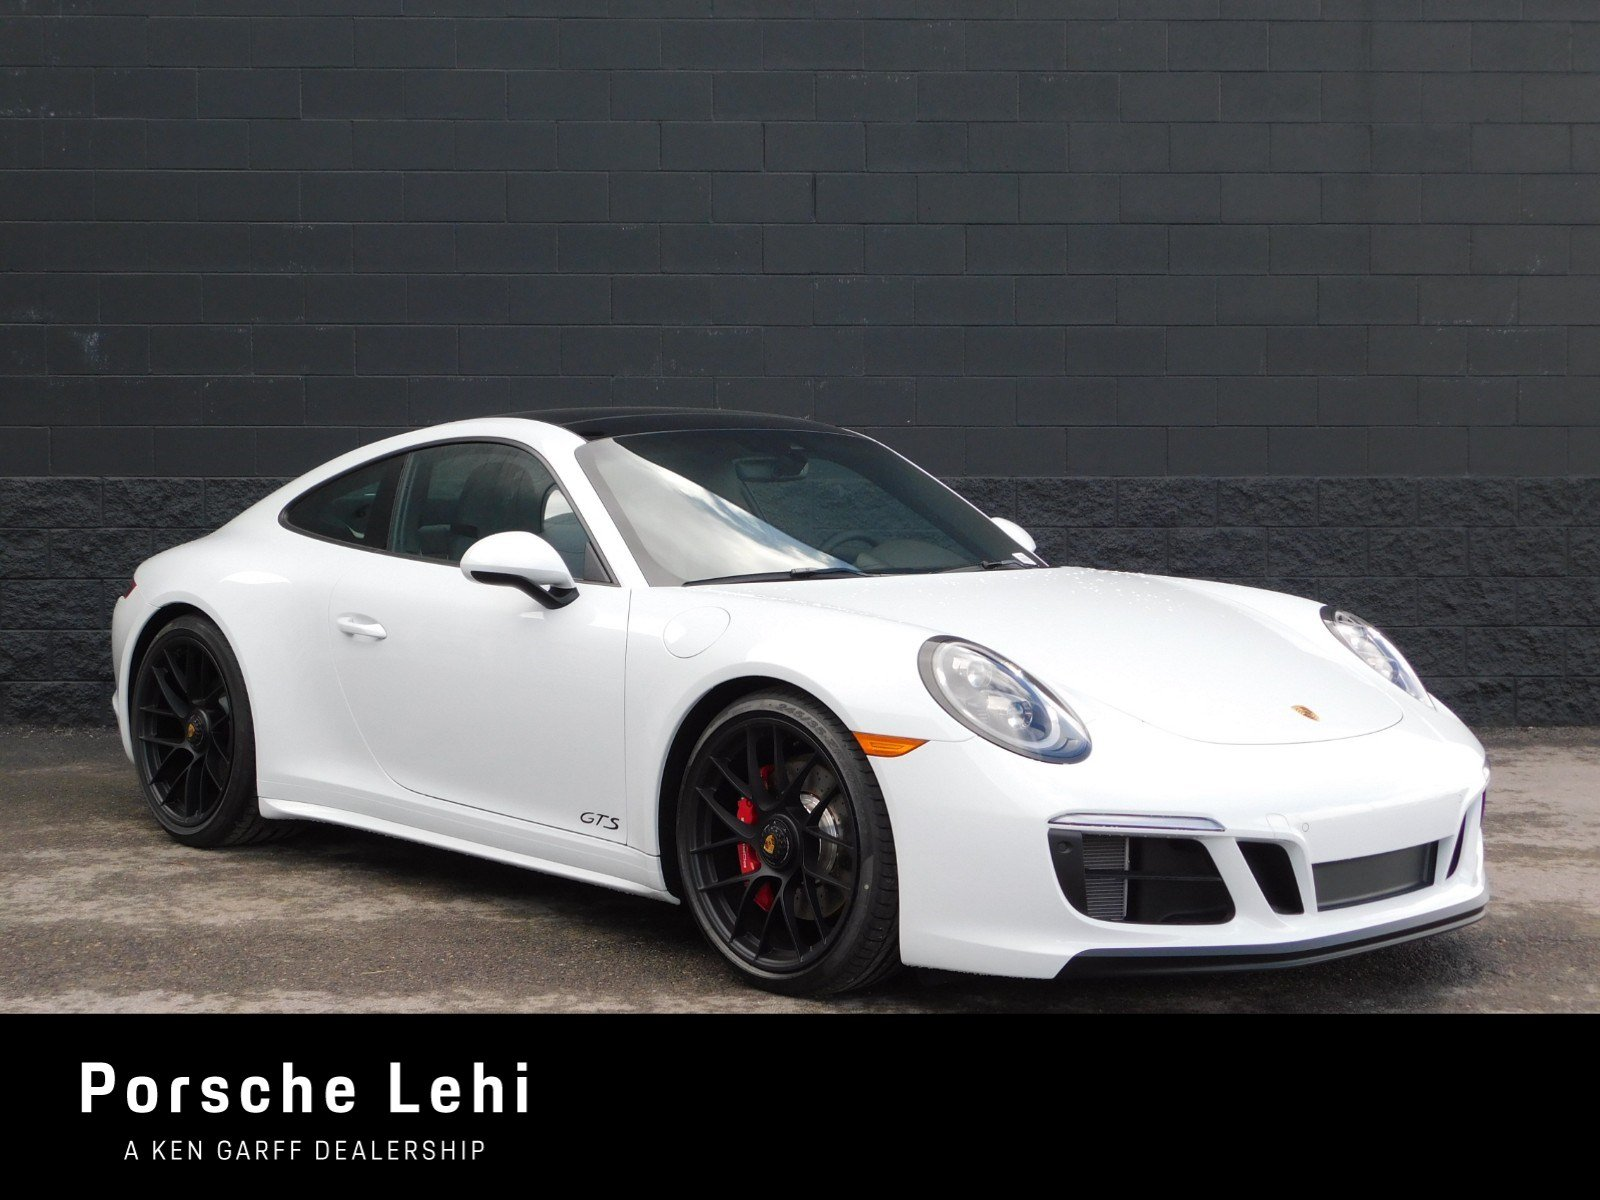 new 2019 porsche 911 carrera gts 2dr car in lehi #2p90056 | porsche lehi